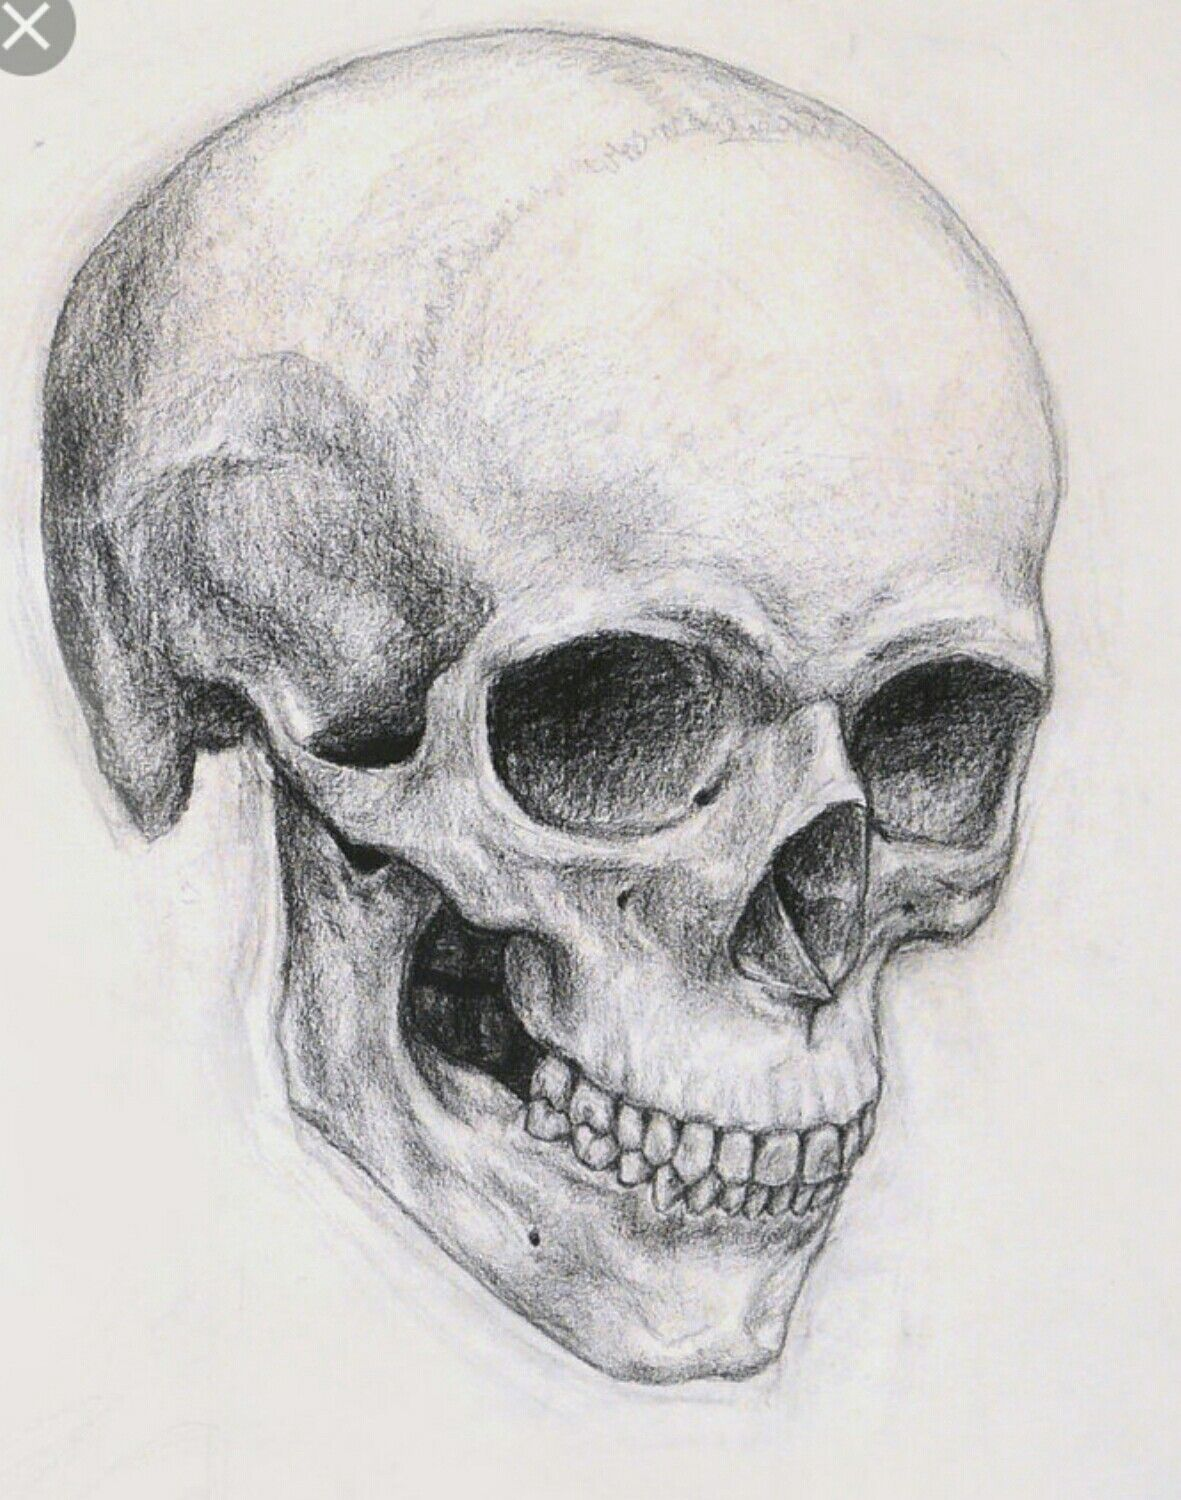 Skull angles | Ink | Skull sketch, Art, Skeleton drawings